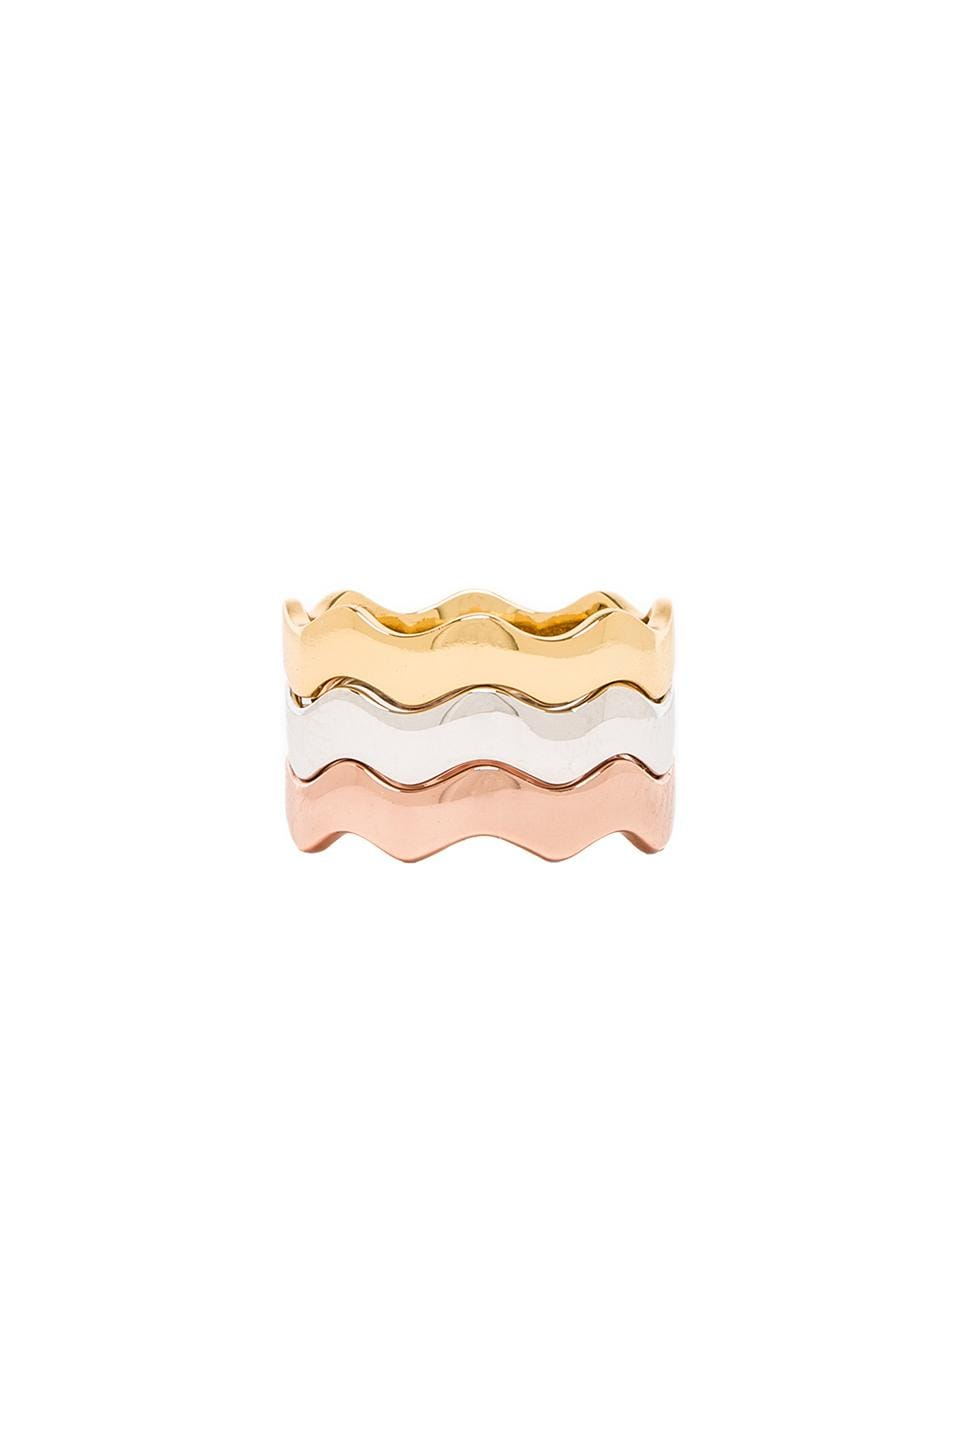 gorjana Zig Zag Ring Set in Mixed